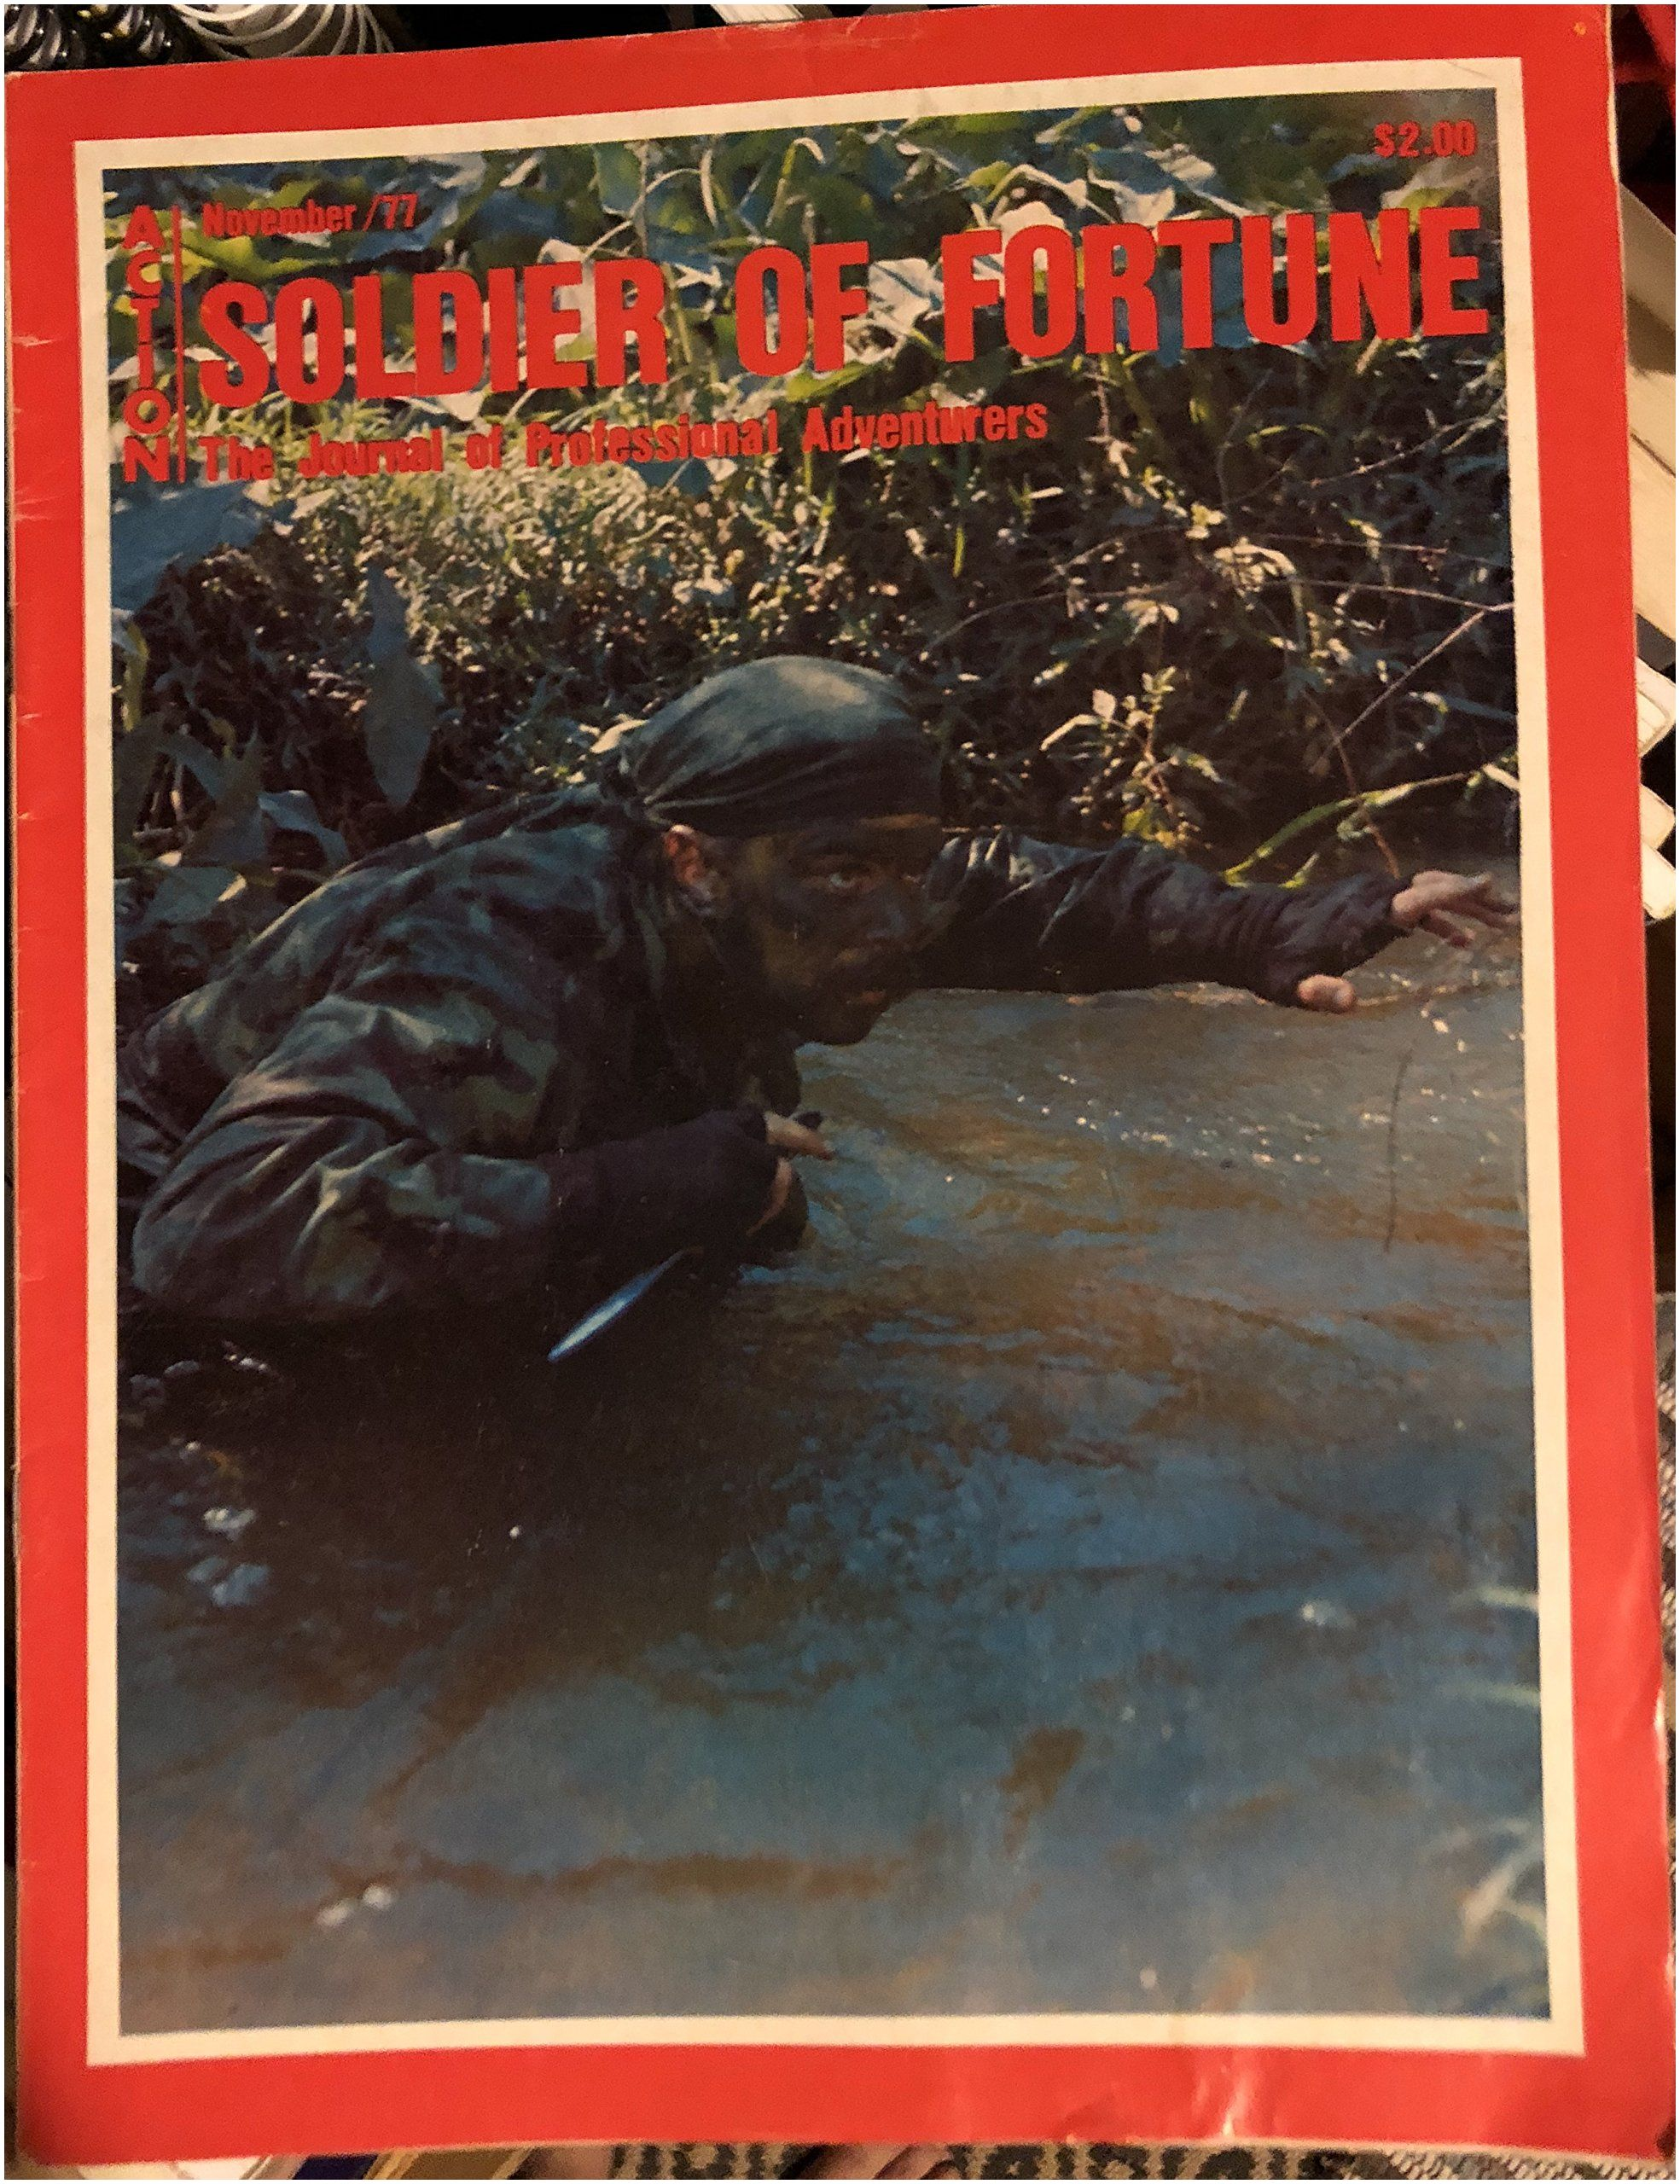 Sol r of Fortune Magazine November 1977 Paperback – 1977